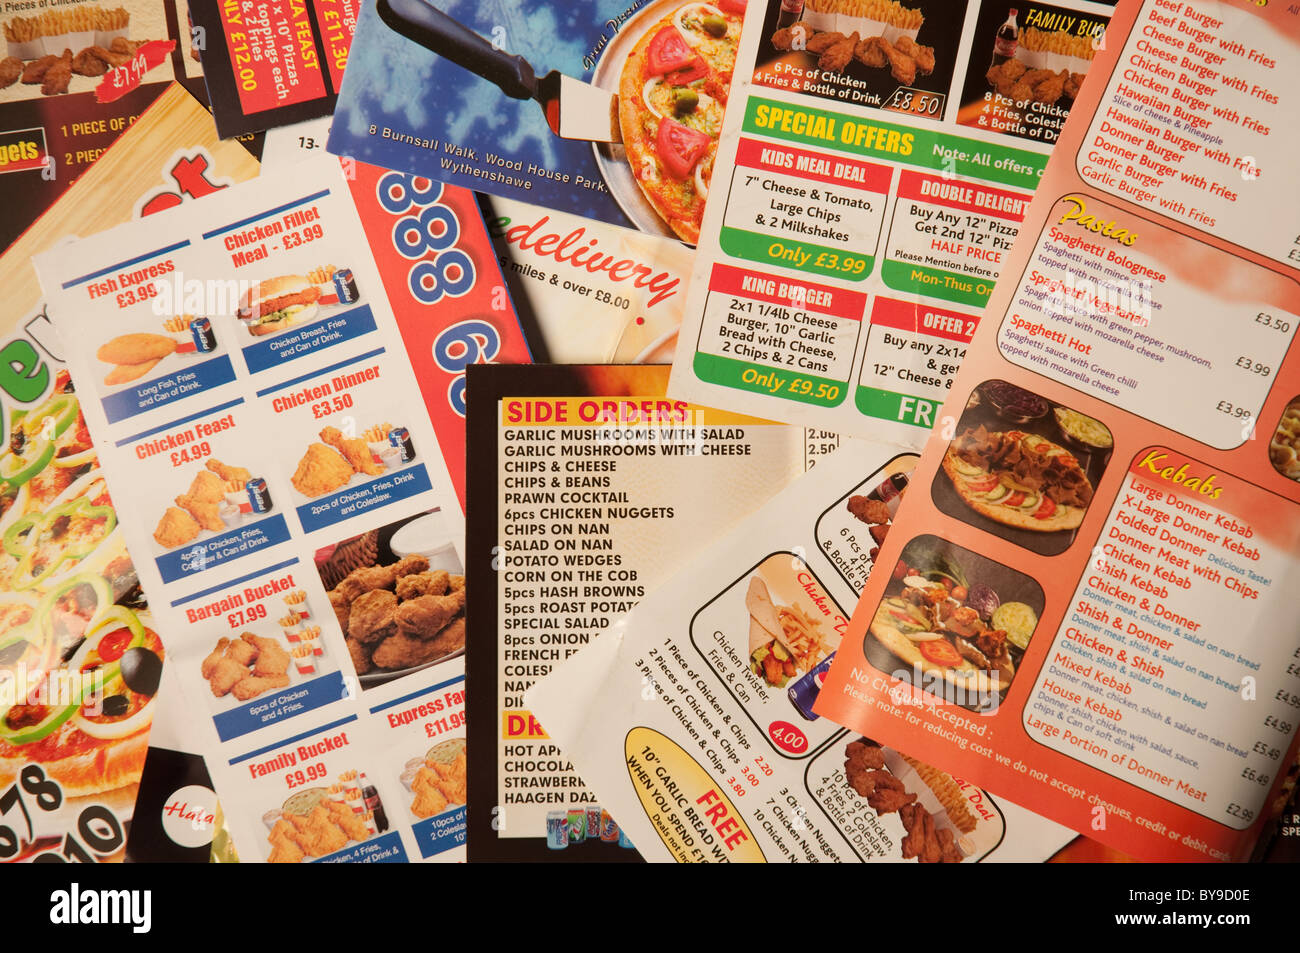 Selection of fast food flyers/mailers typical of the millions that are posted through letterboxes every year. - Stock Image